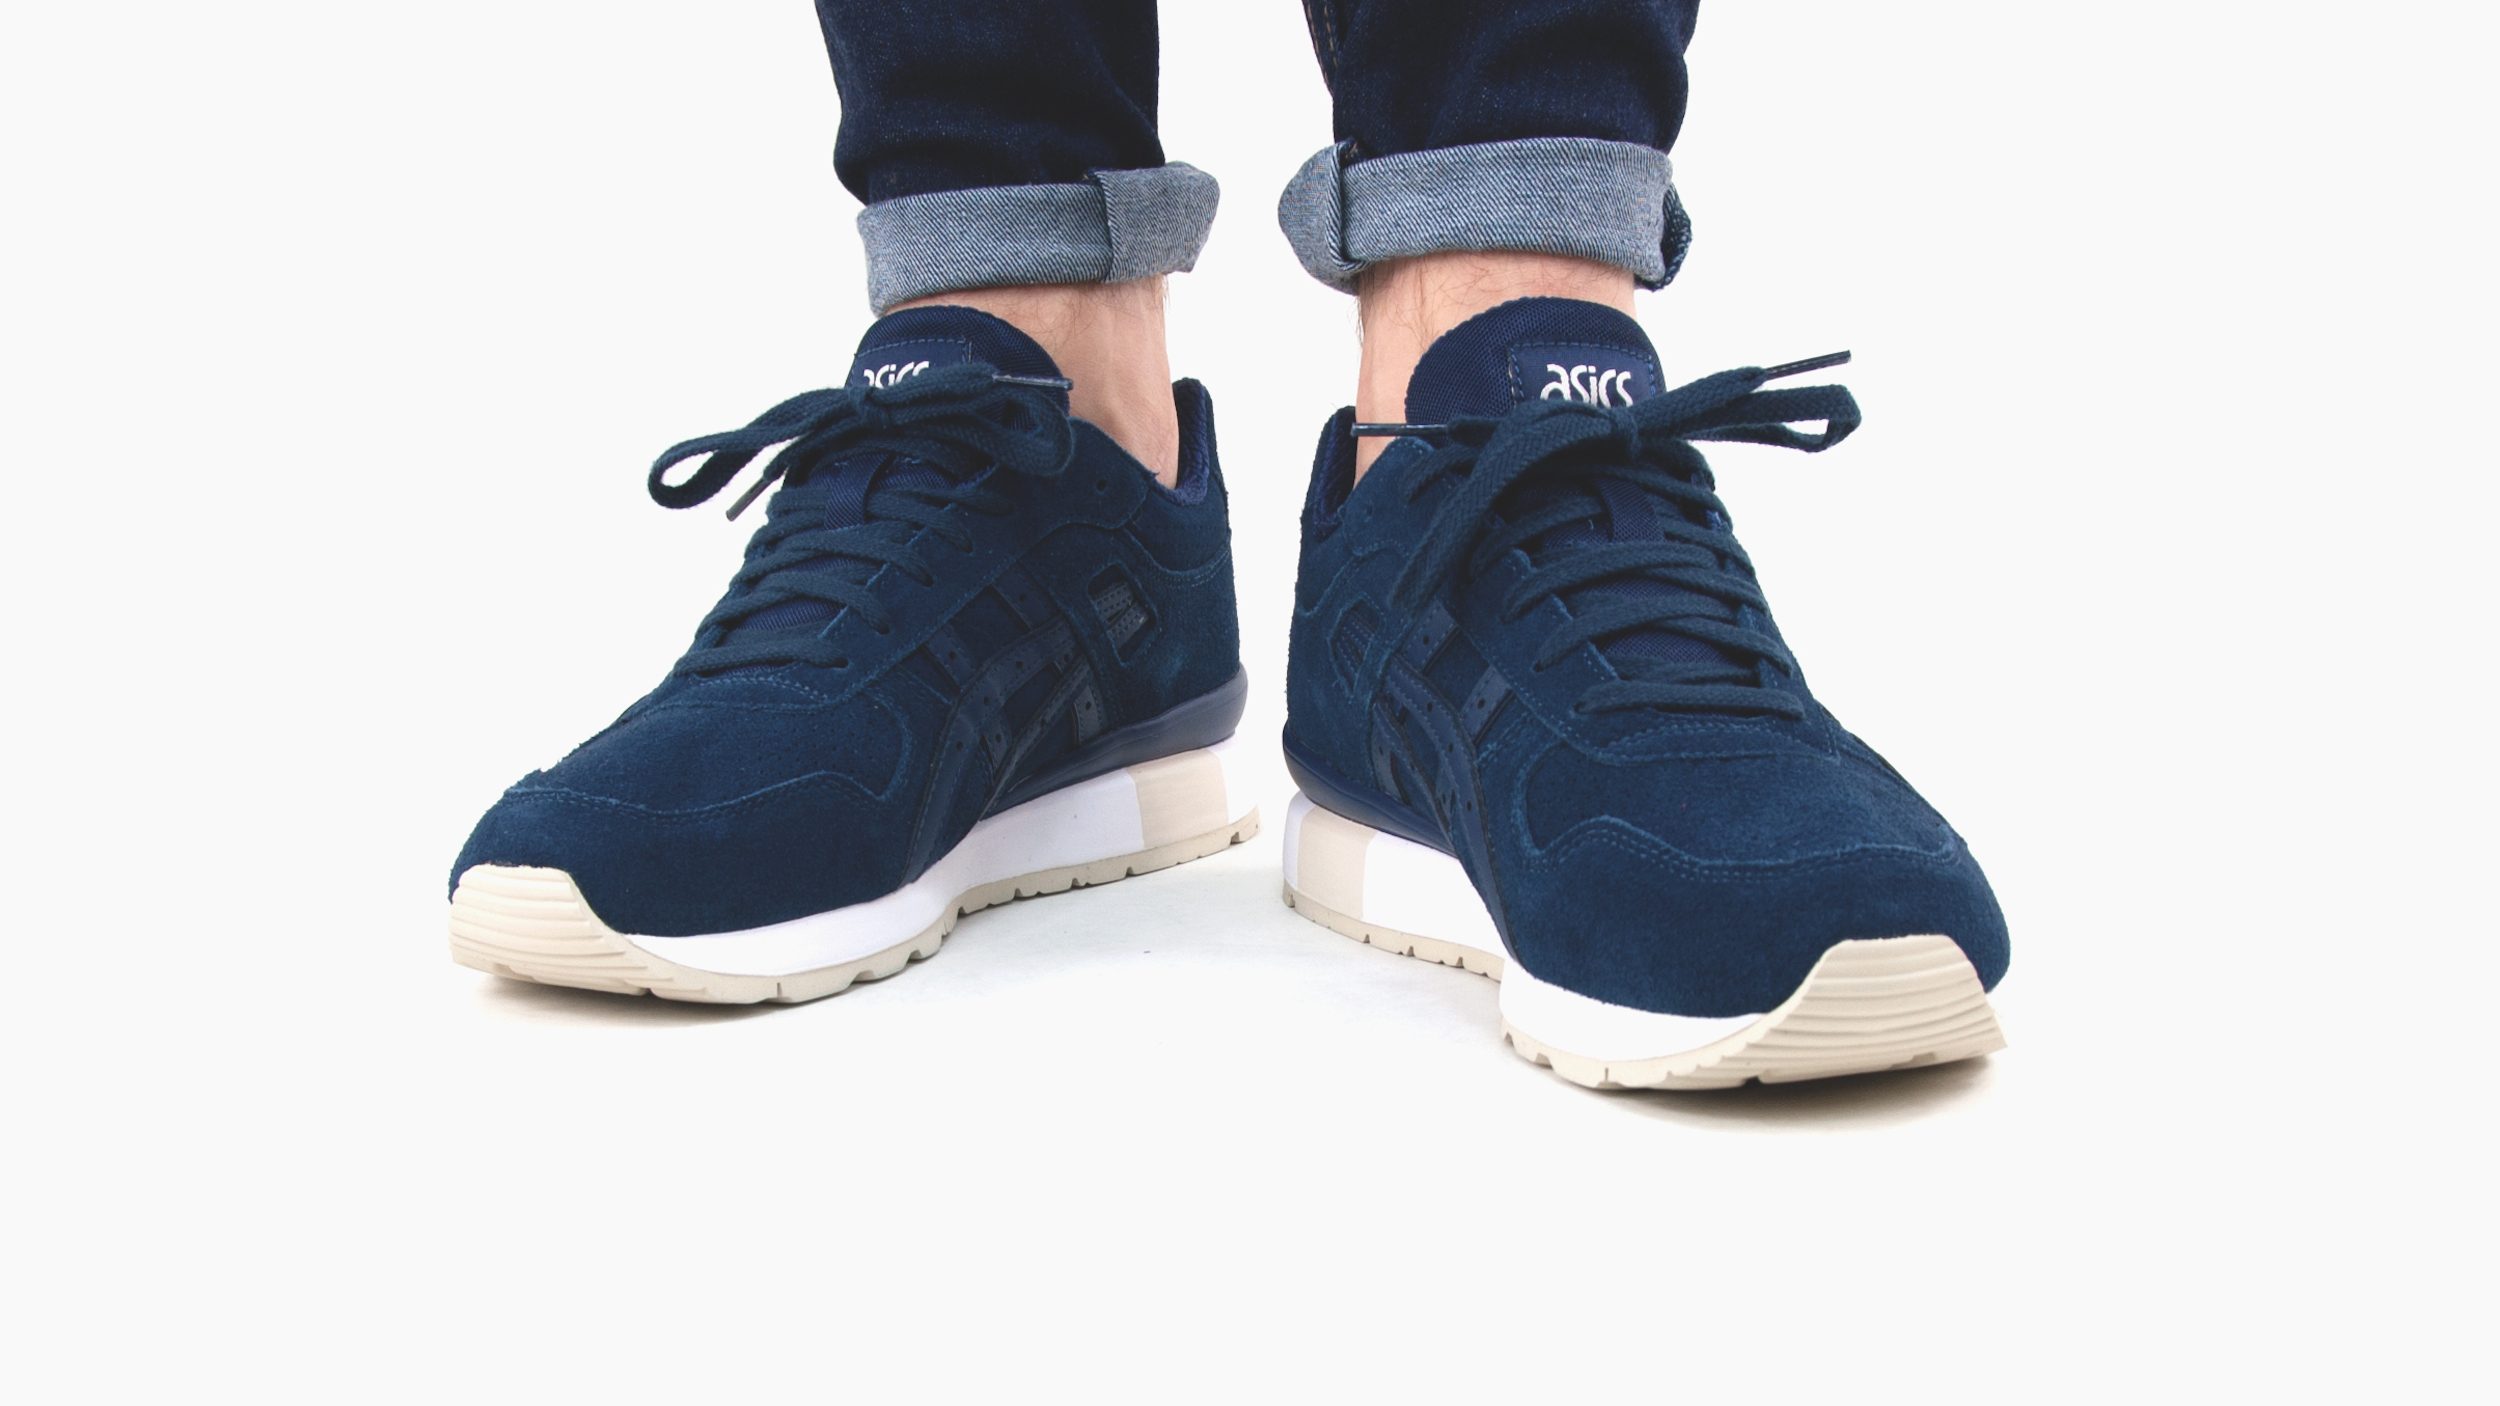 asics-gt-ii-suede-pack-MATE-Promo-3